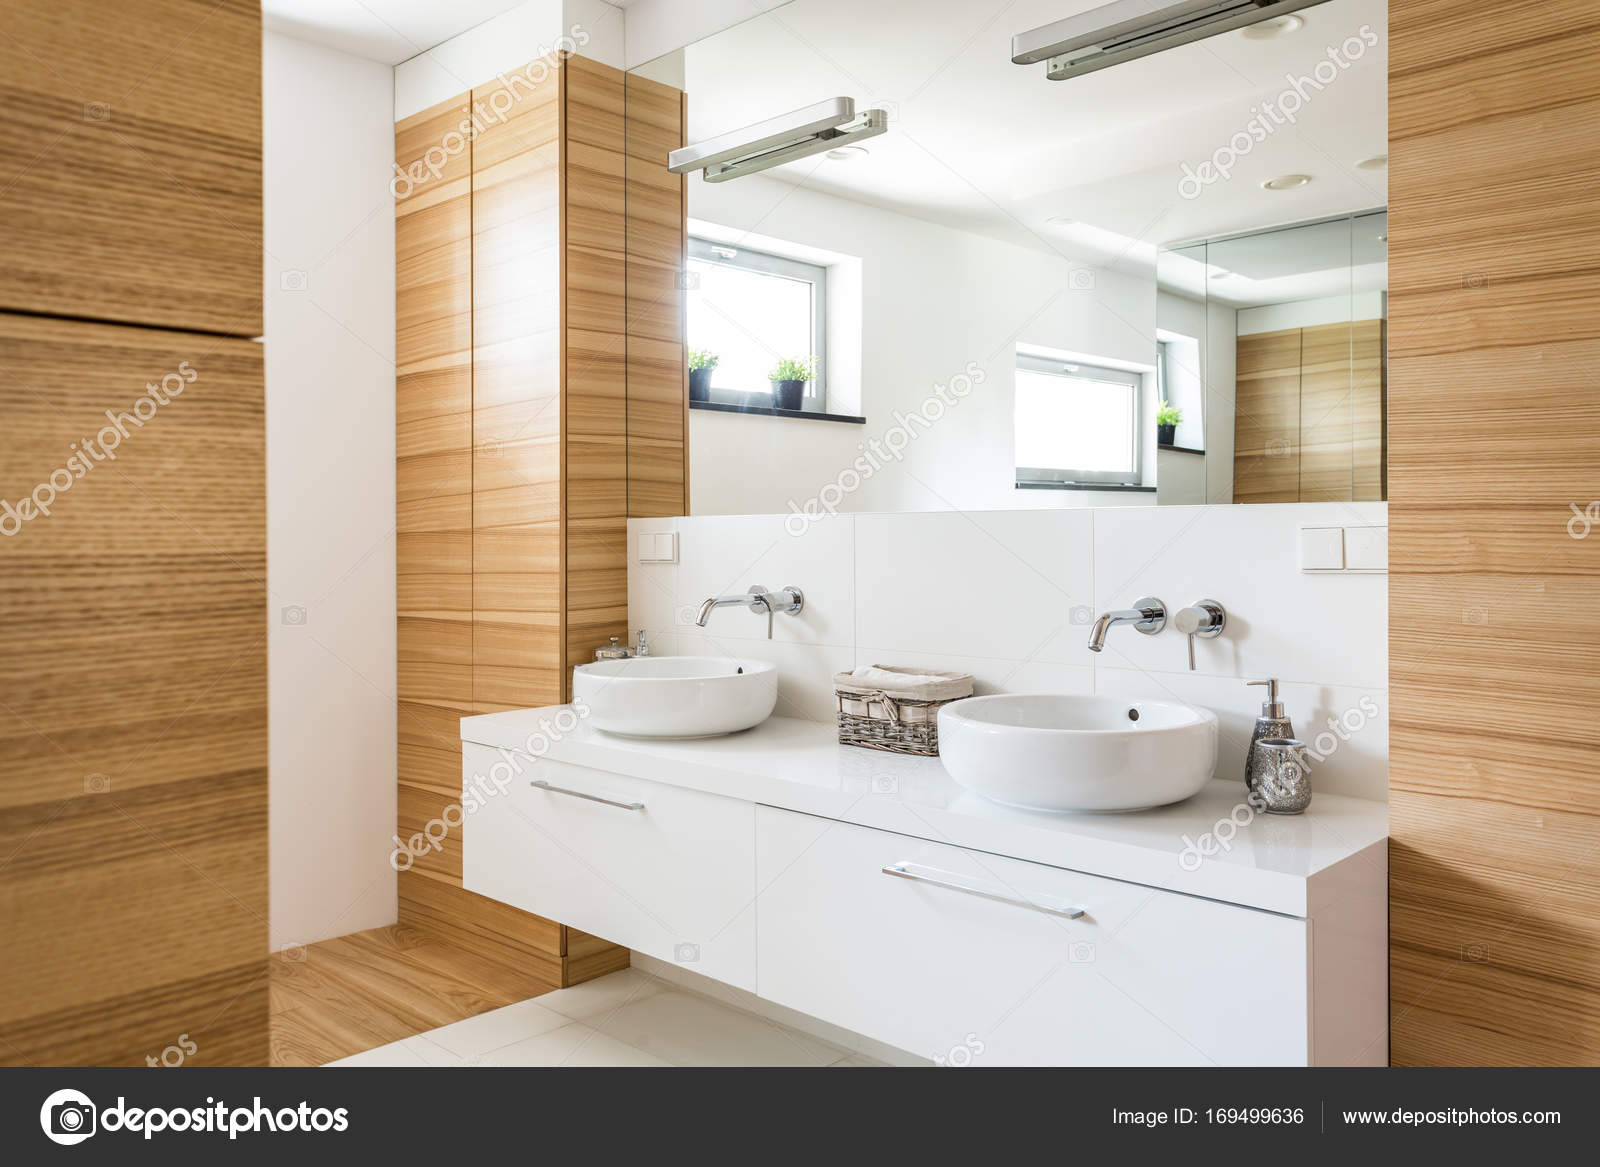 holz im bad-design — stockfoto © photographee.eu #169499636